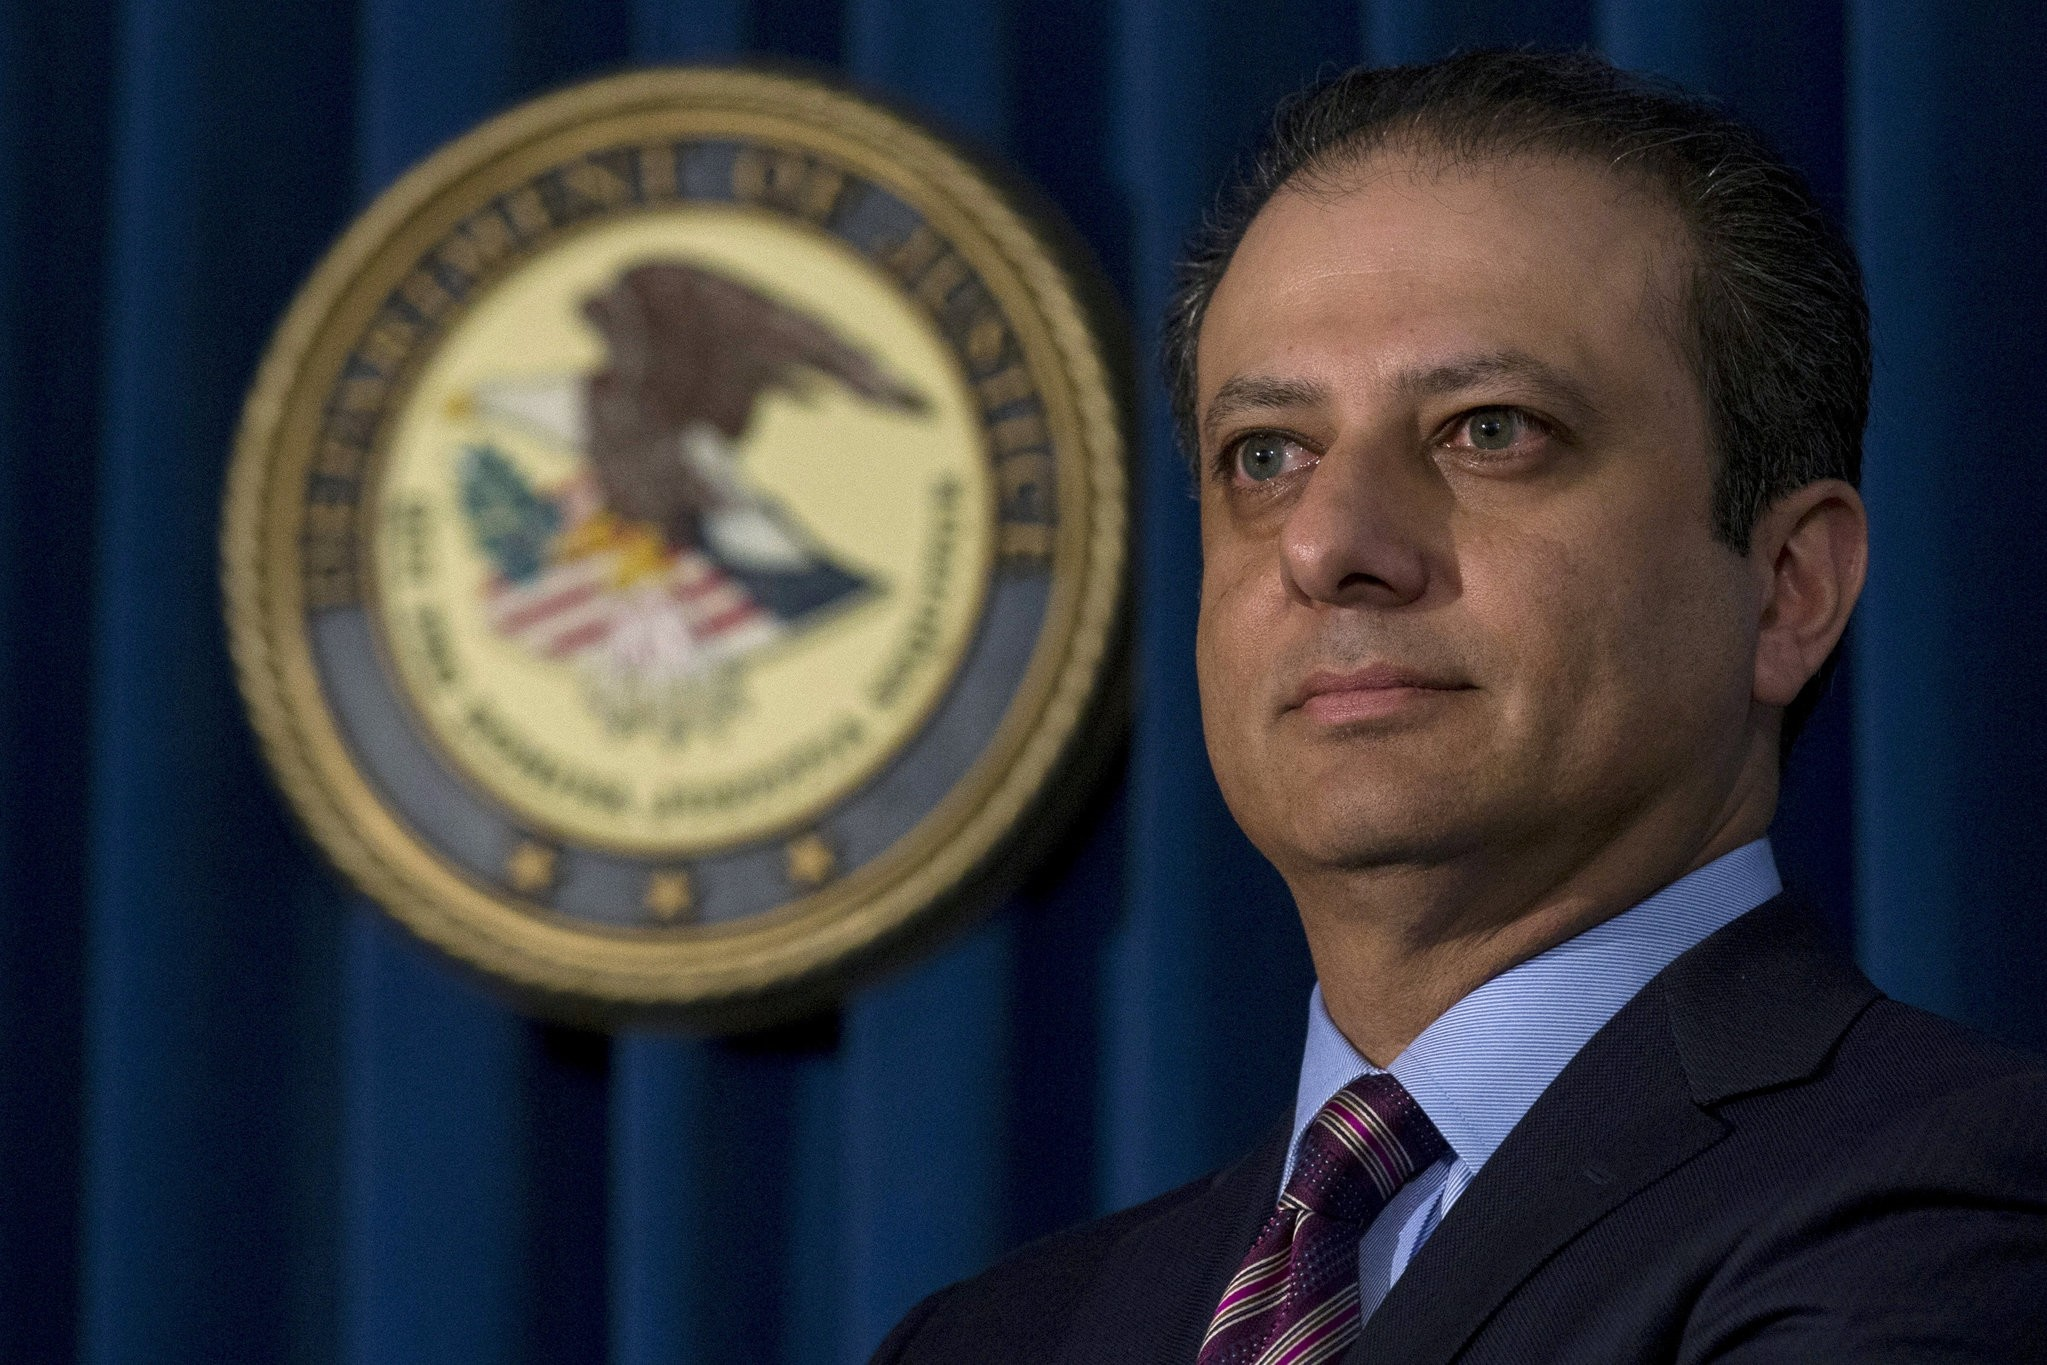 Manhattan U.S. Attorney Preet Bharara attends a news conference at his office in New York October 29, 2015. (REUTERS Photo)